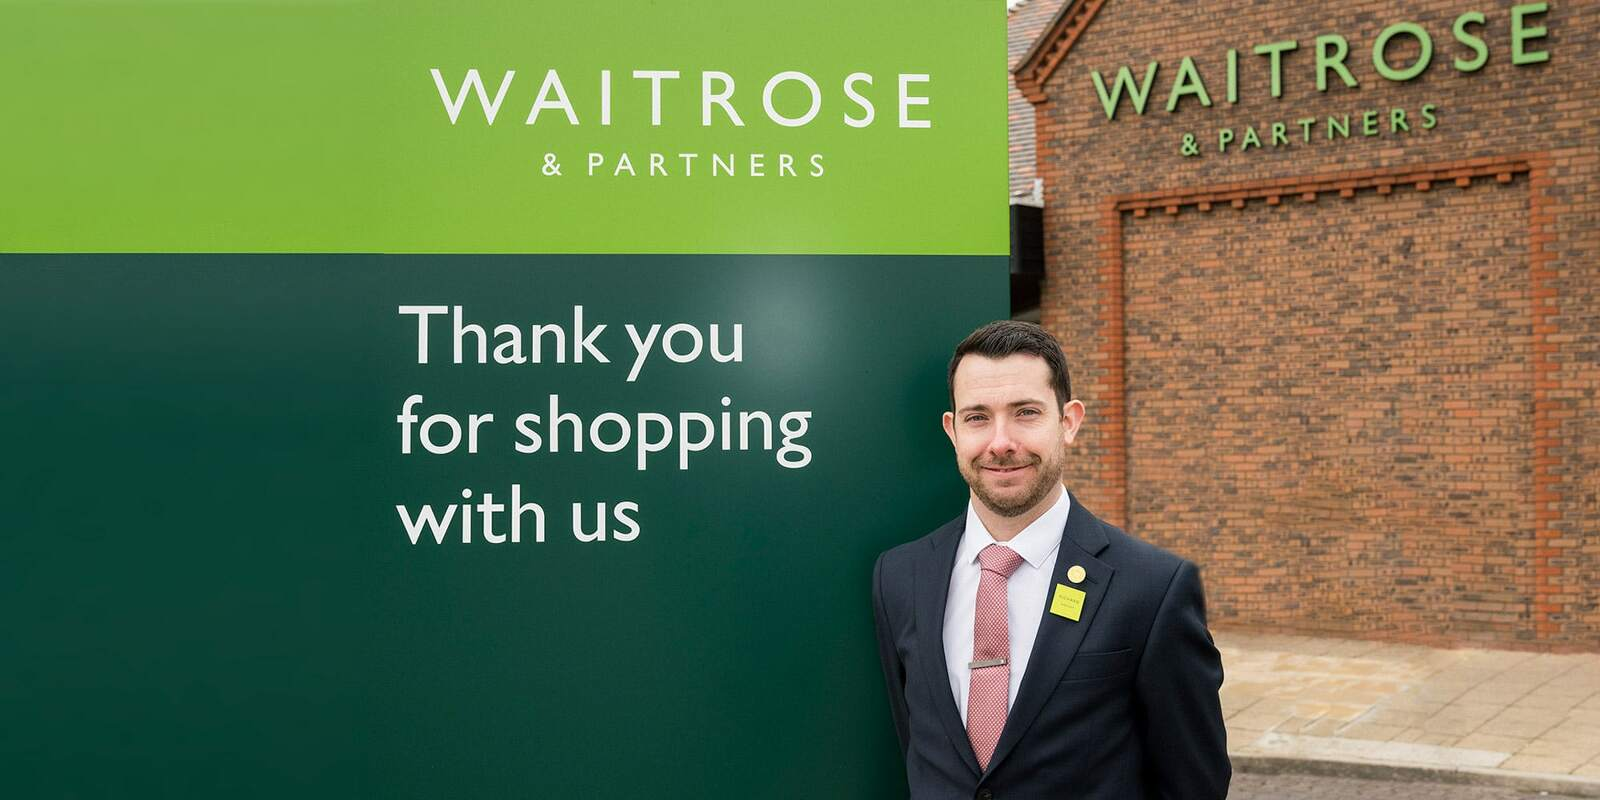 Commercial Photographer working at Waitrose